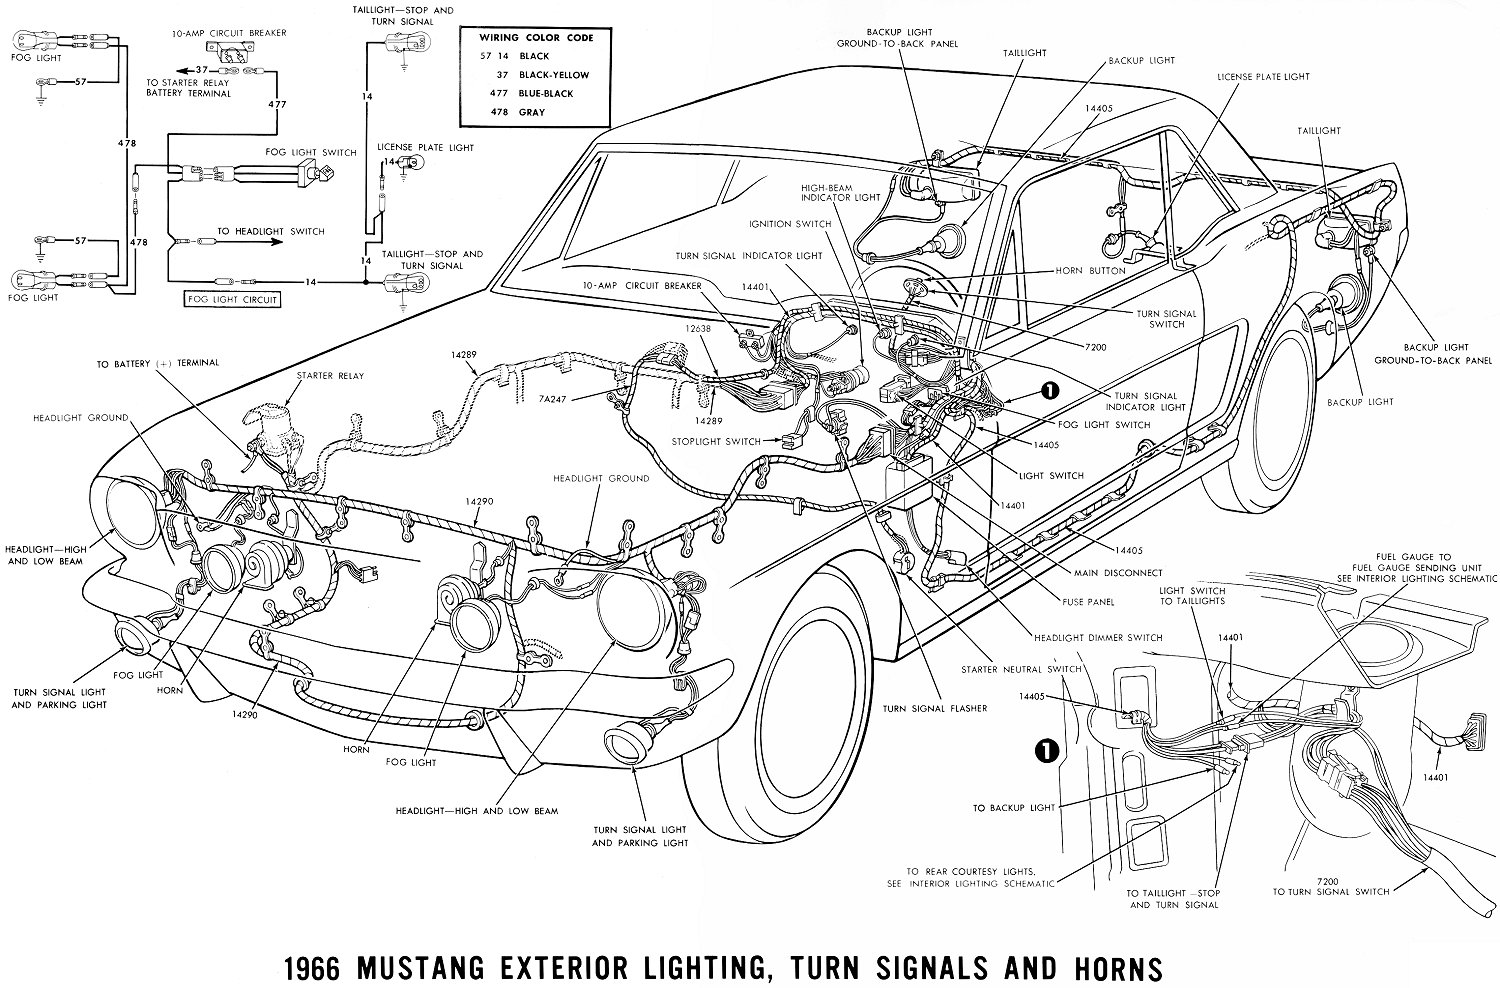 El Ritningar 1967 Chevelle Ss Wiring Diagram Schematic 1966 Mustang Exterior Lighting Turn Signals And Horns Schema